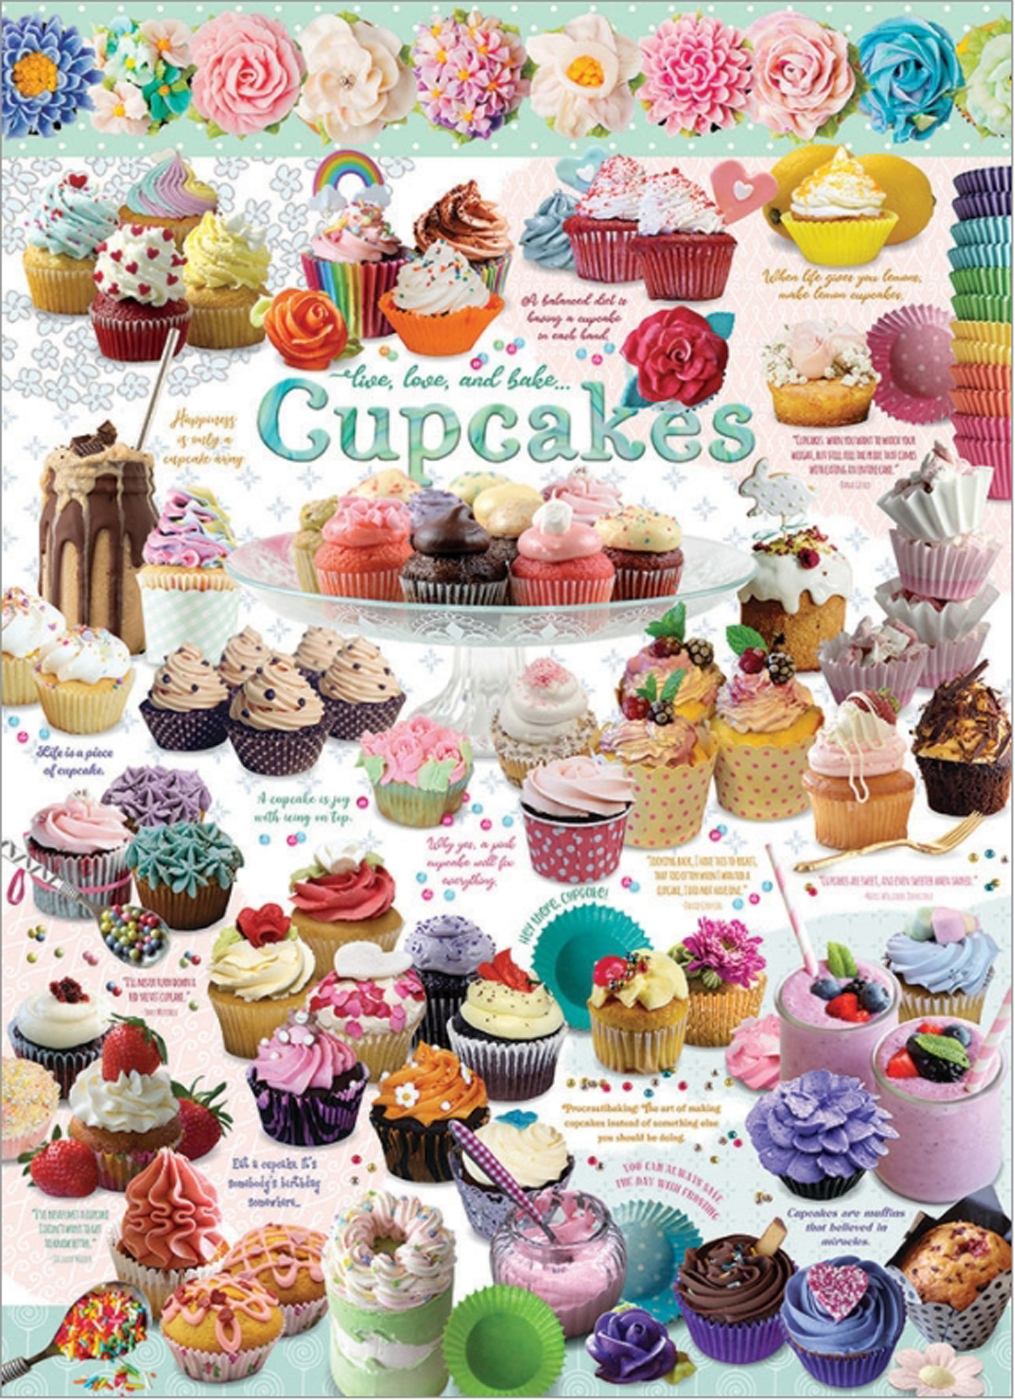 Cupcake Time Food and Drink Jigsaw Puzzle